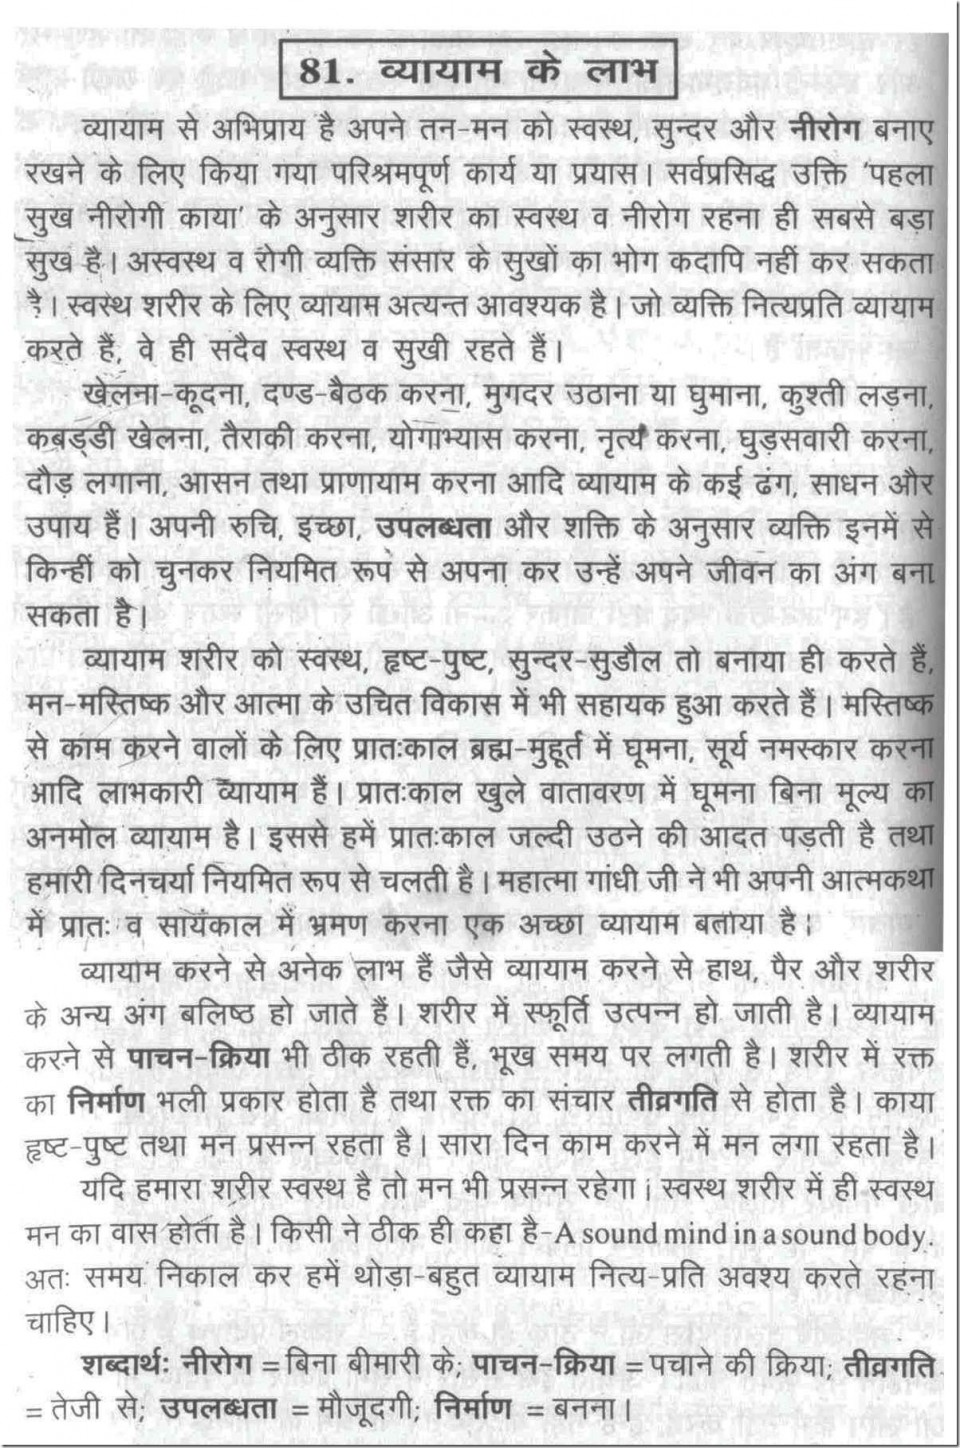 011 2563478896 Essay On Health And Fitness Through Food Good Habits In Hindi Exceptional Healthy Eating Reading Is A Habit 960